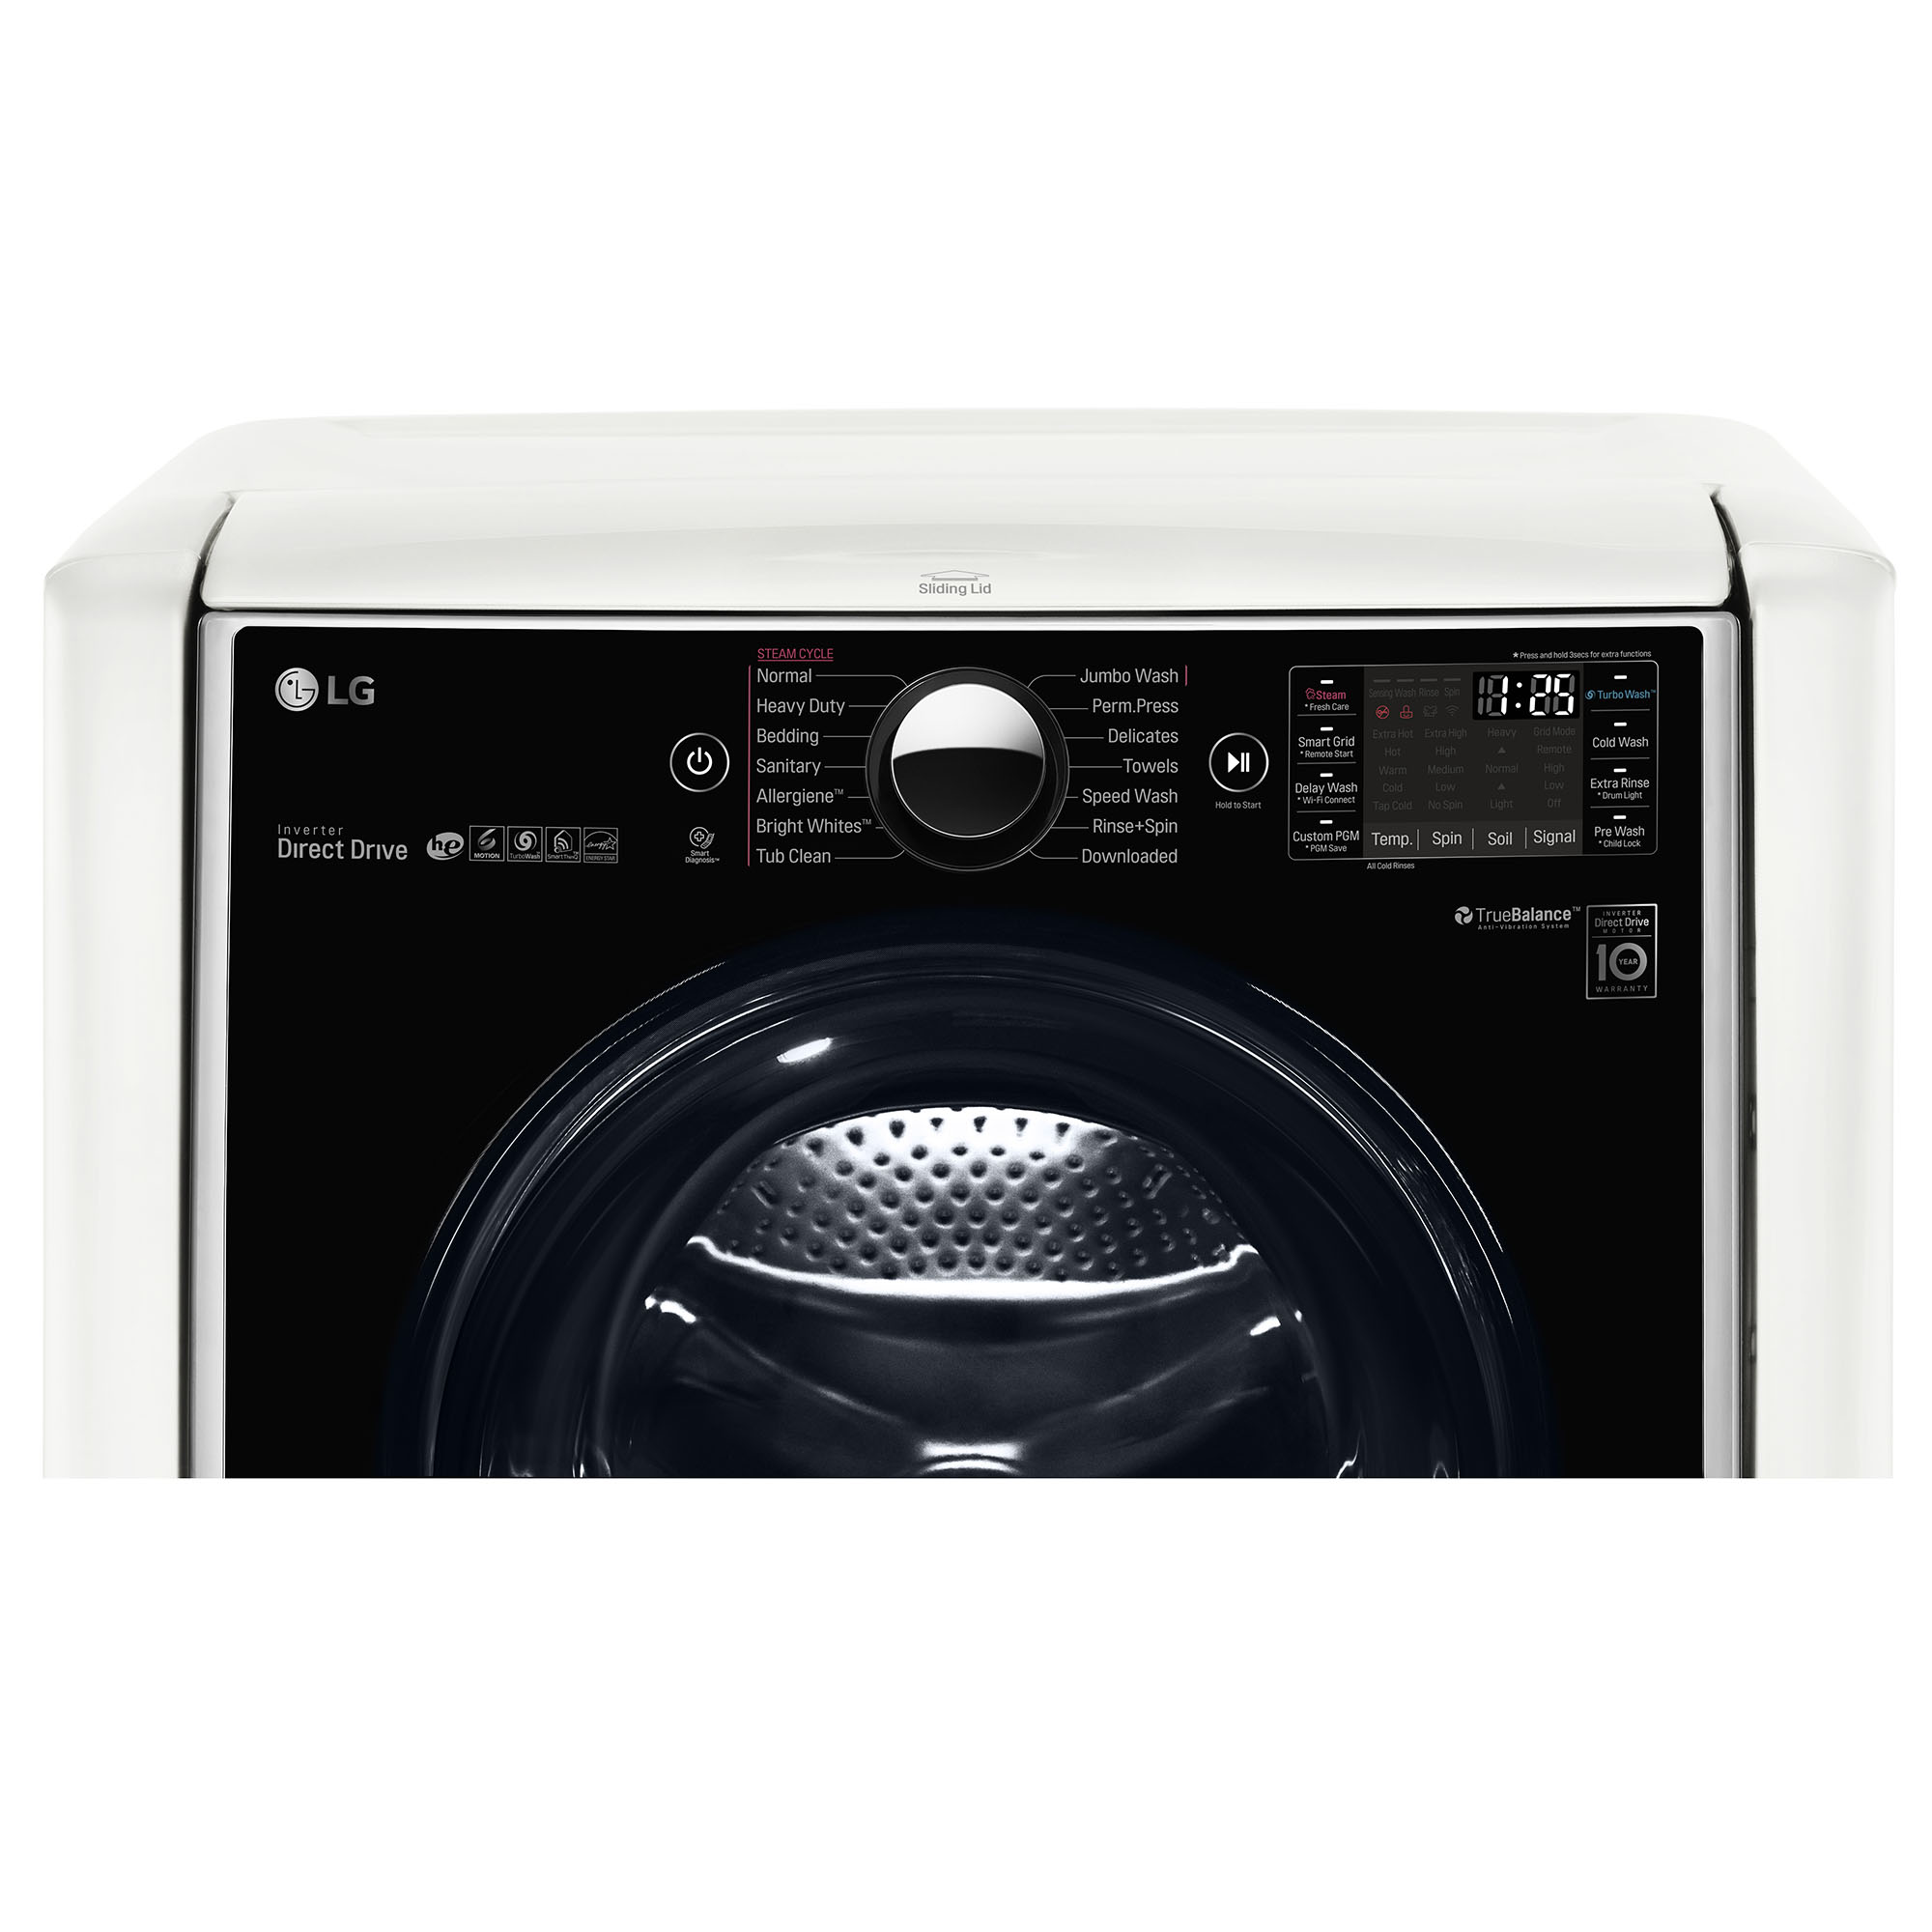 LG WM9000HWA 5.2 cu. ft. Mega Capacity Front Load Washer w/ TWIN Wash™ - White